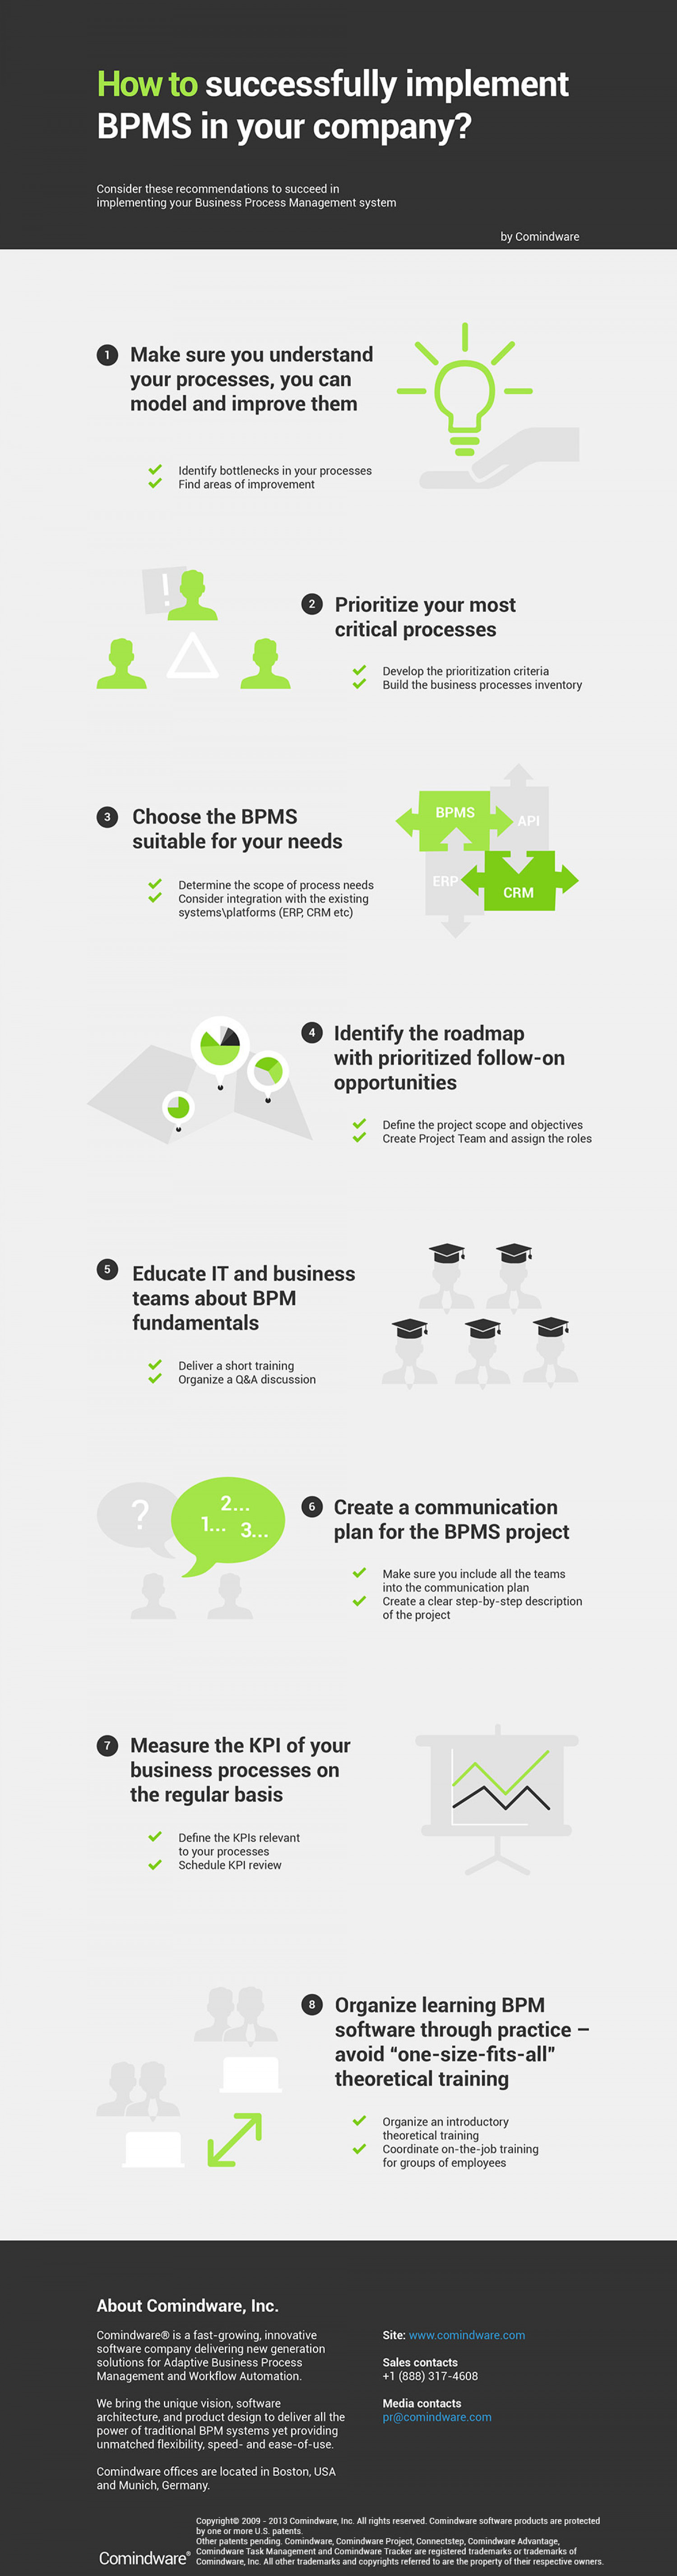 How to Successfully Implement BPMS in Your Company? Infographic